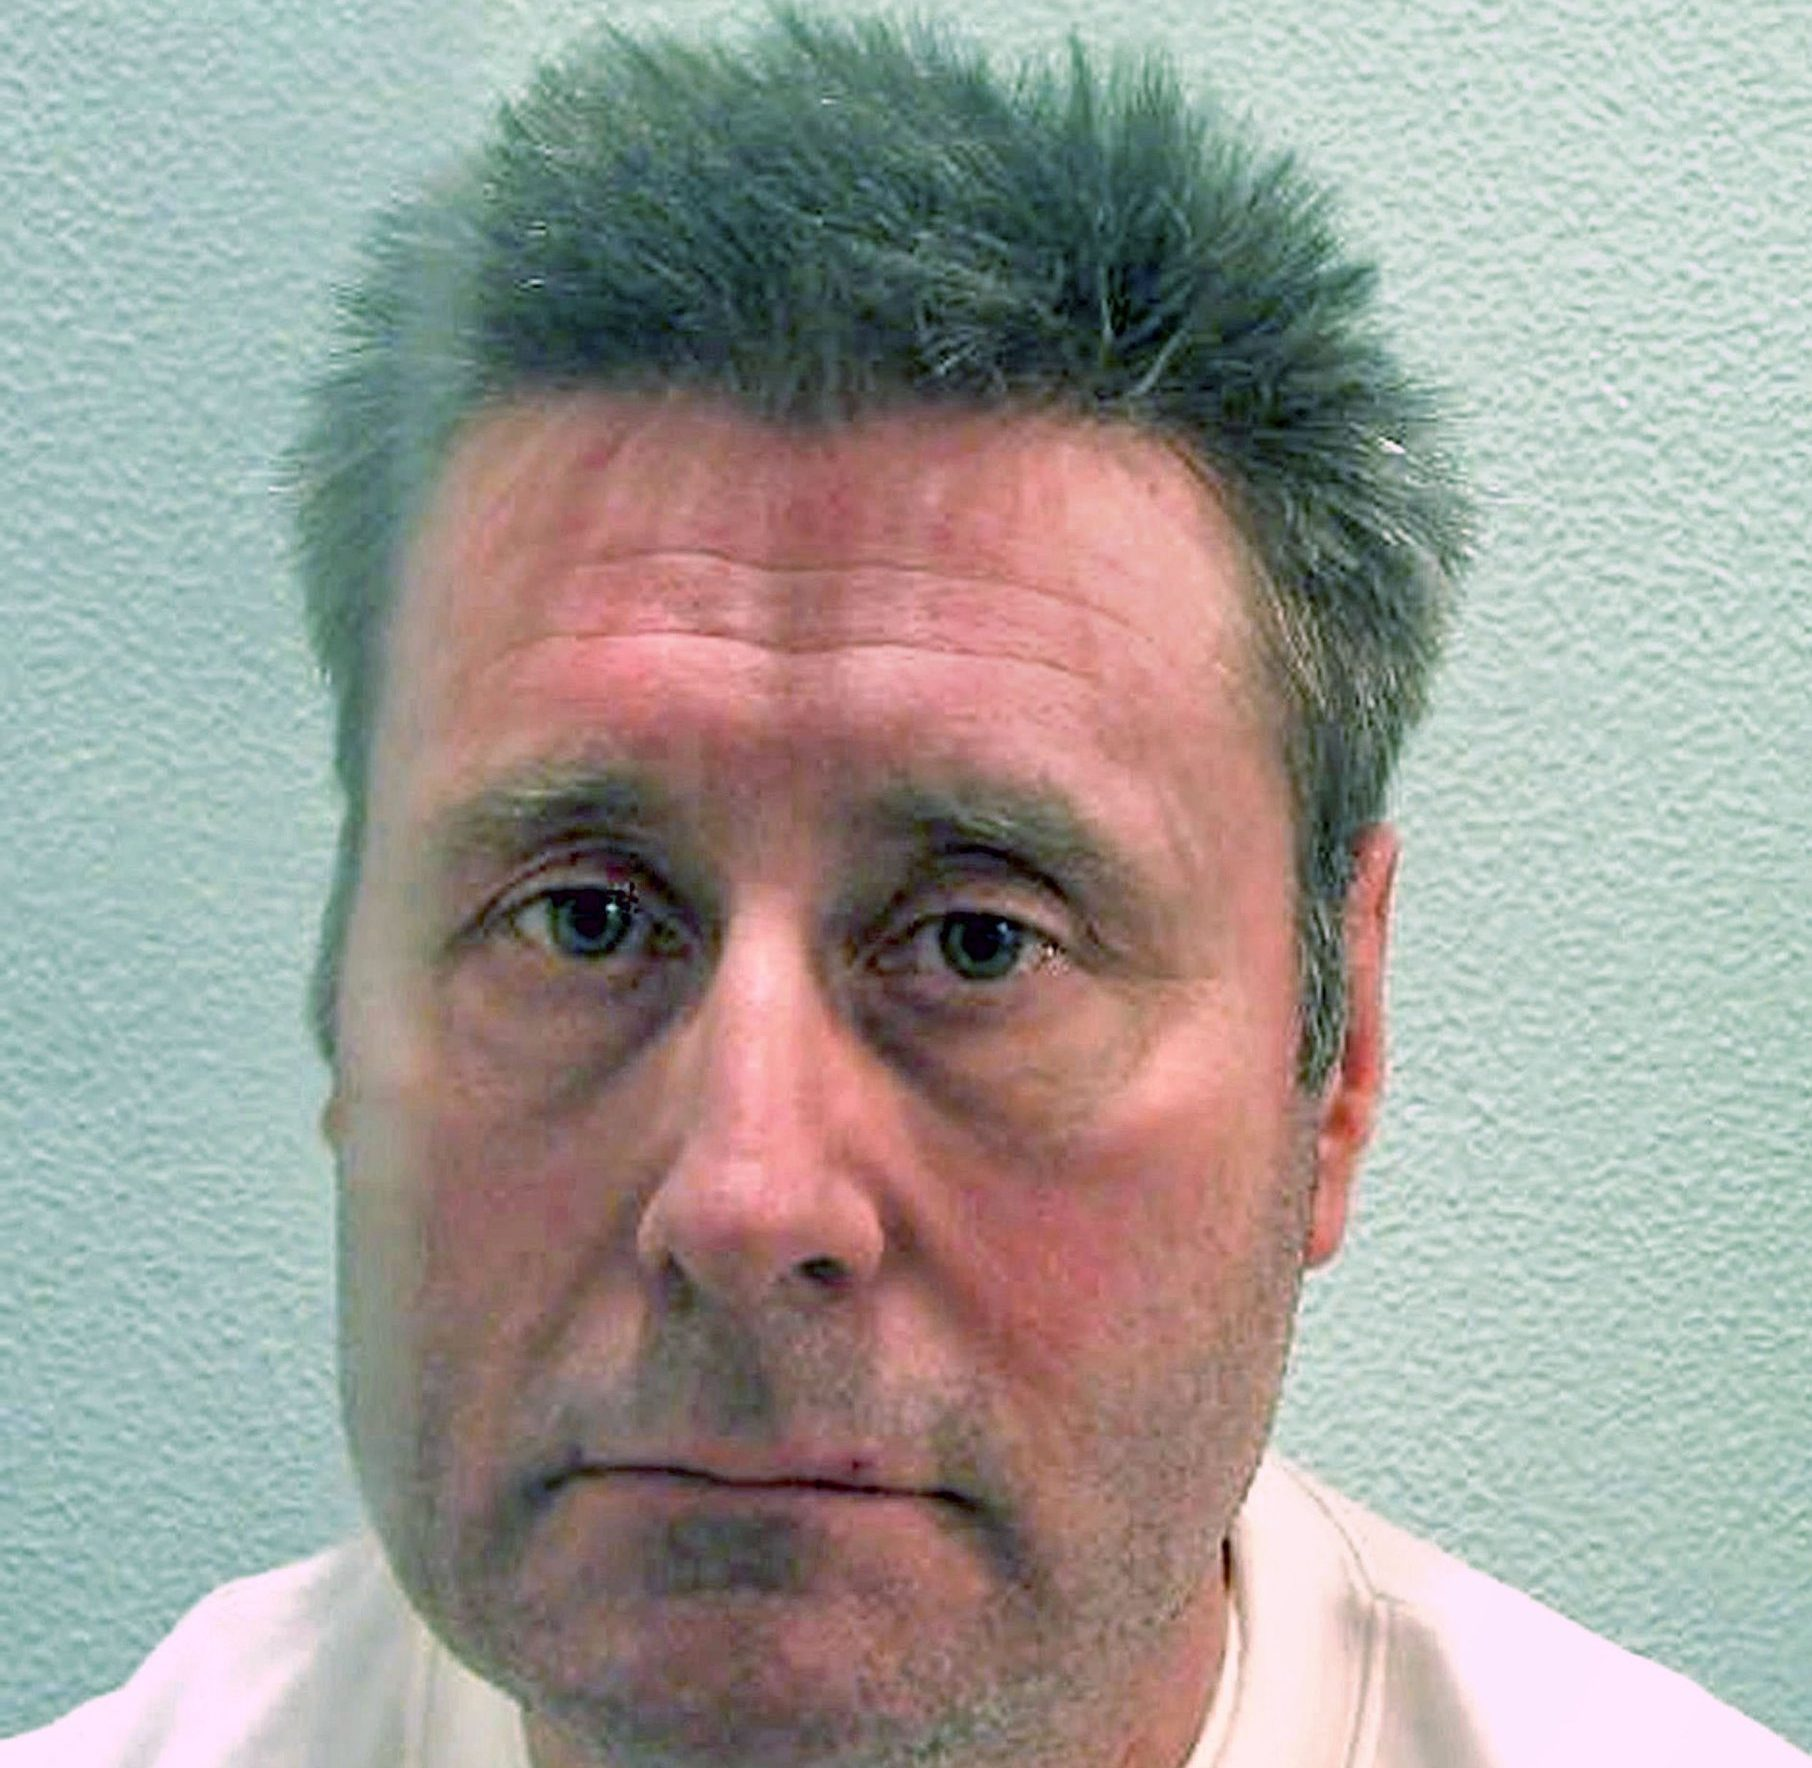 Black cab rapist John Worboys 'will be given 24/7 protection costing £300,000 a year'